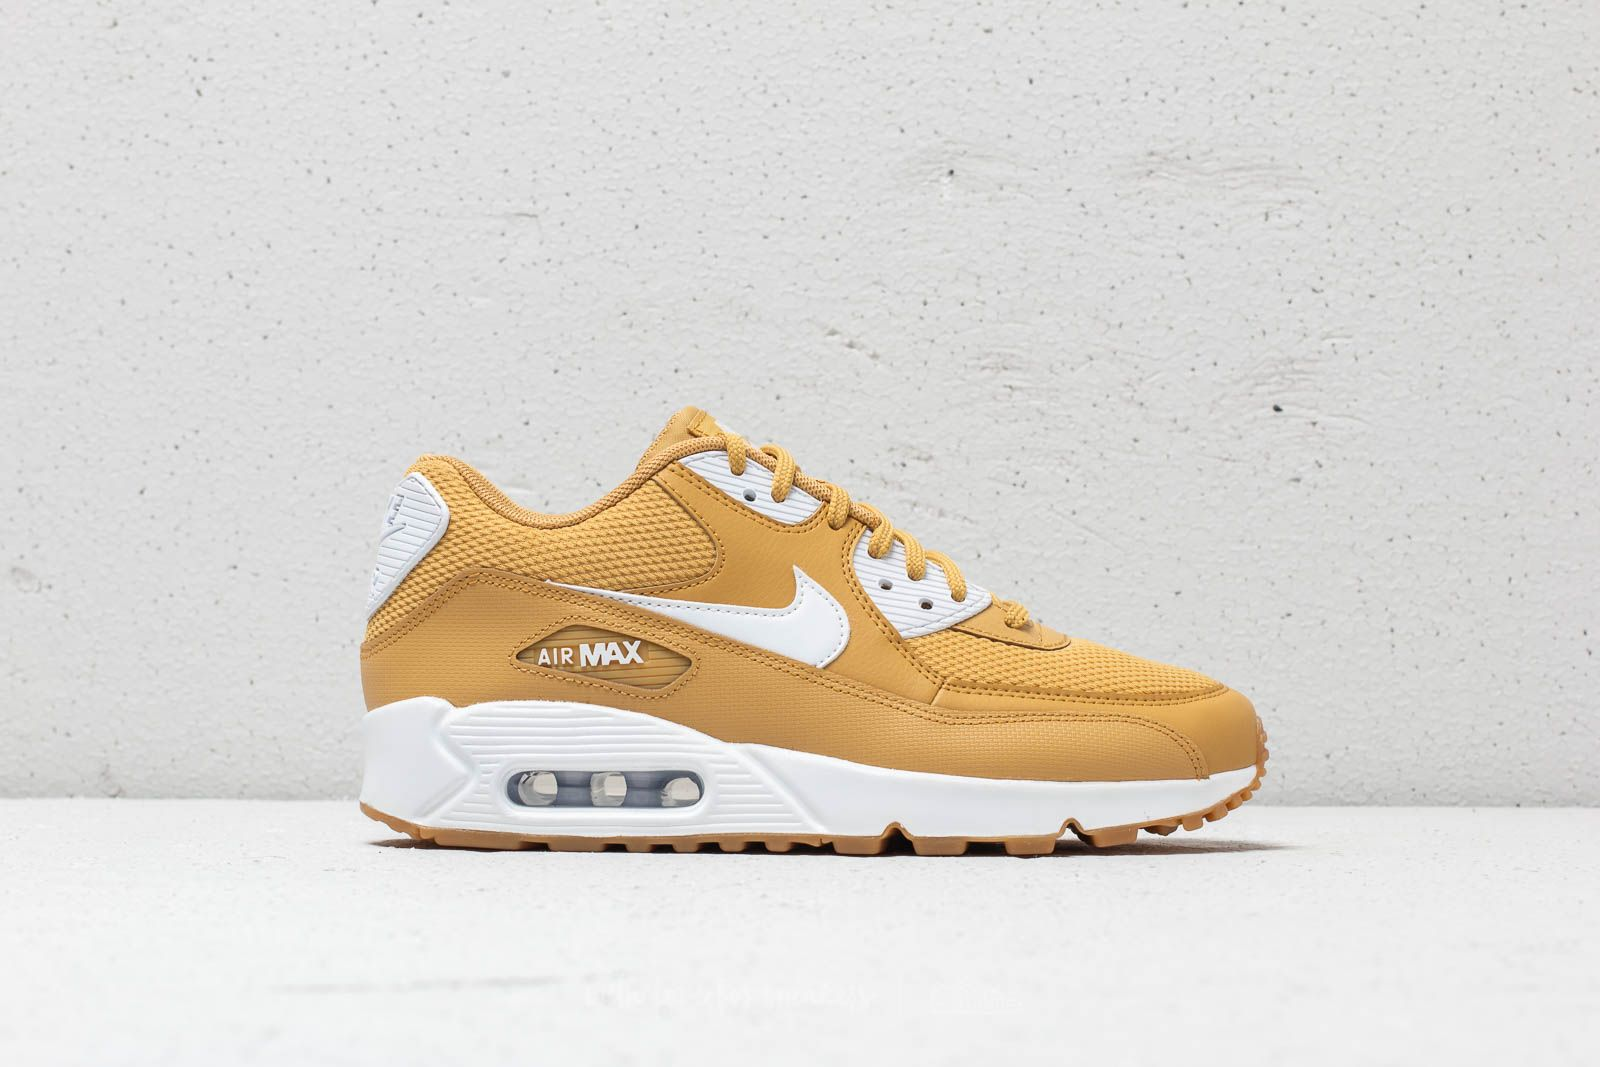 timeless design 97df1 683bc Nike Wmns Air Max 90 Wheat Gold White at a great price 139 € buy